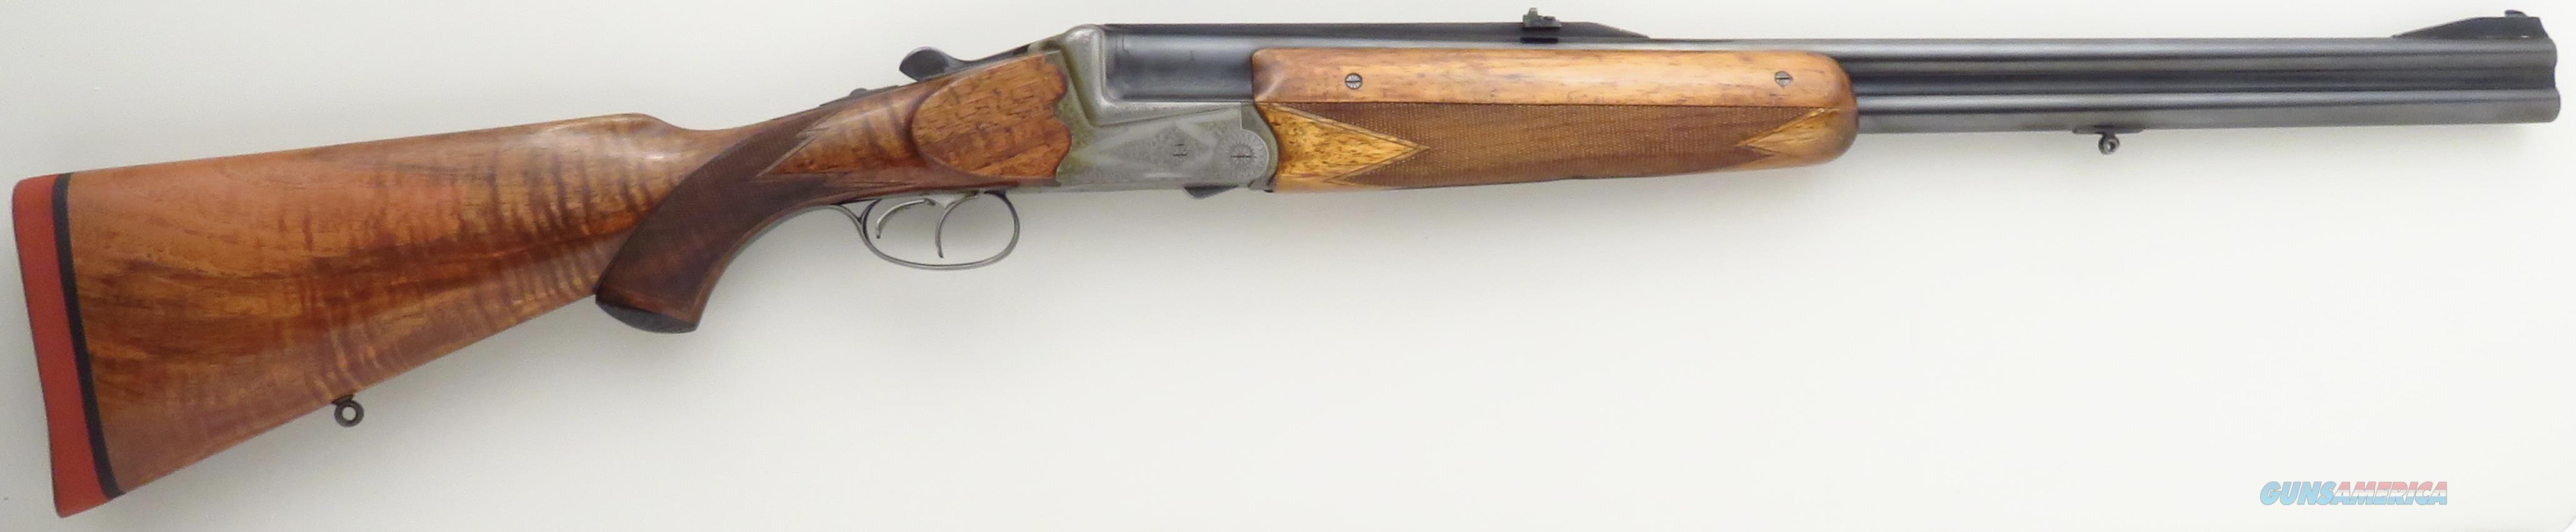 Merkel .458 Win. Magnum O/U double rifle, scalloped boxlock, engraved,  oak & leather case  Guns > Rifles > Double Rifles (Misc.)